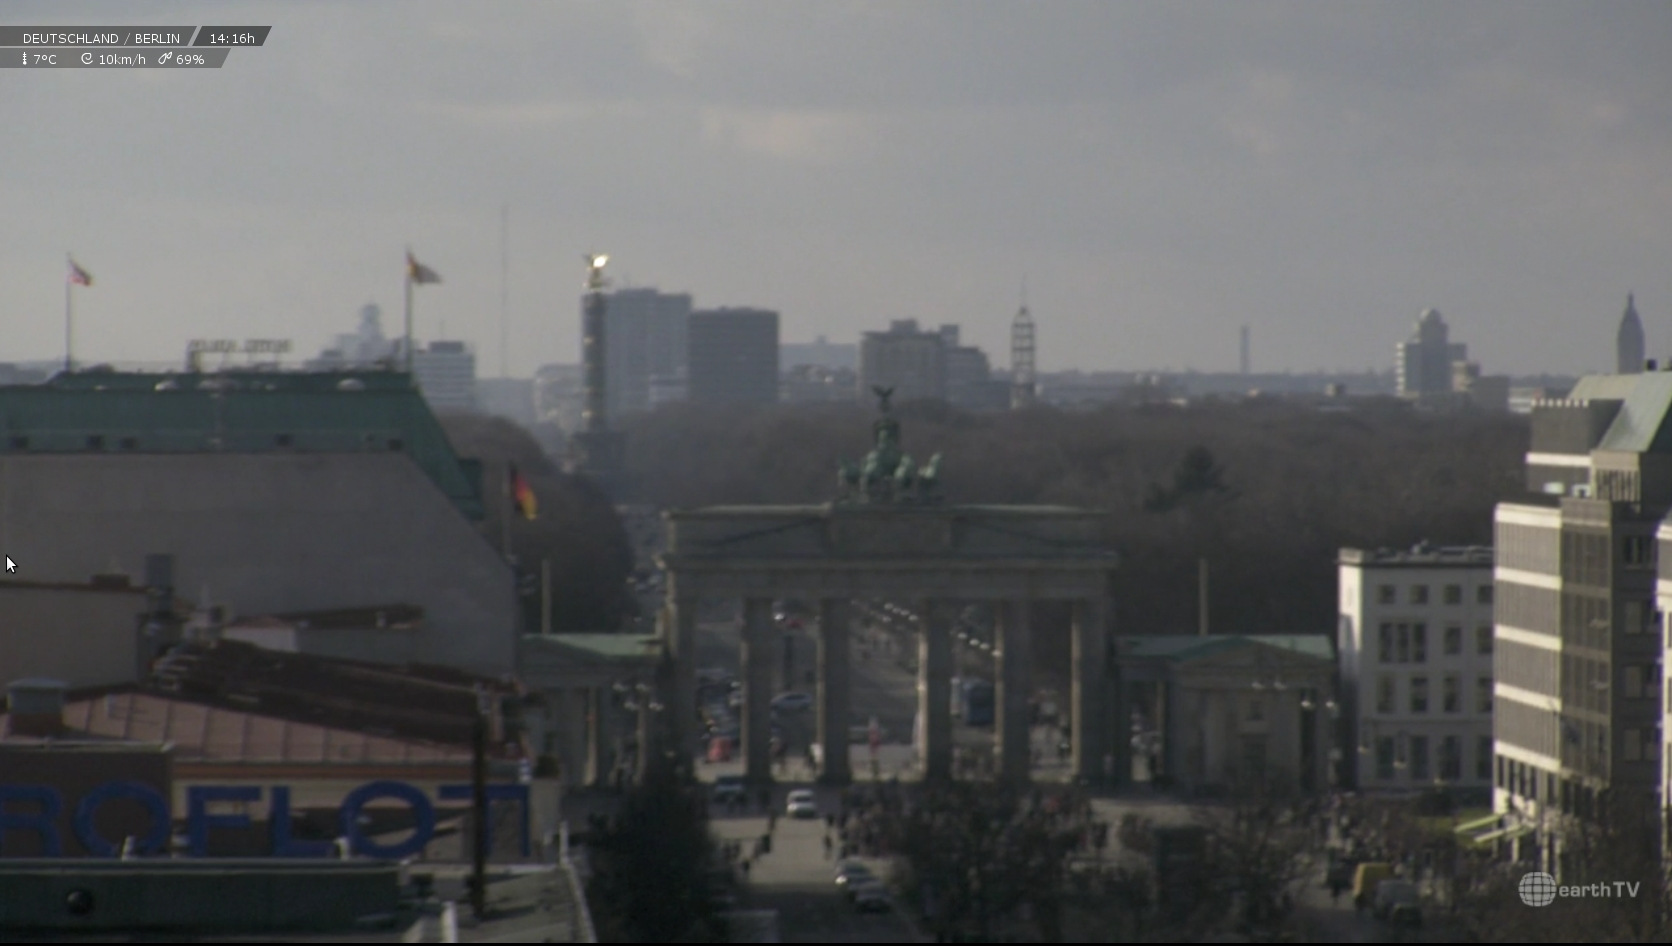 Webcam Berlin Brandenburger Tor